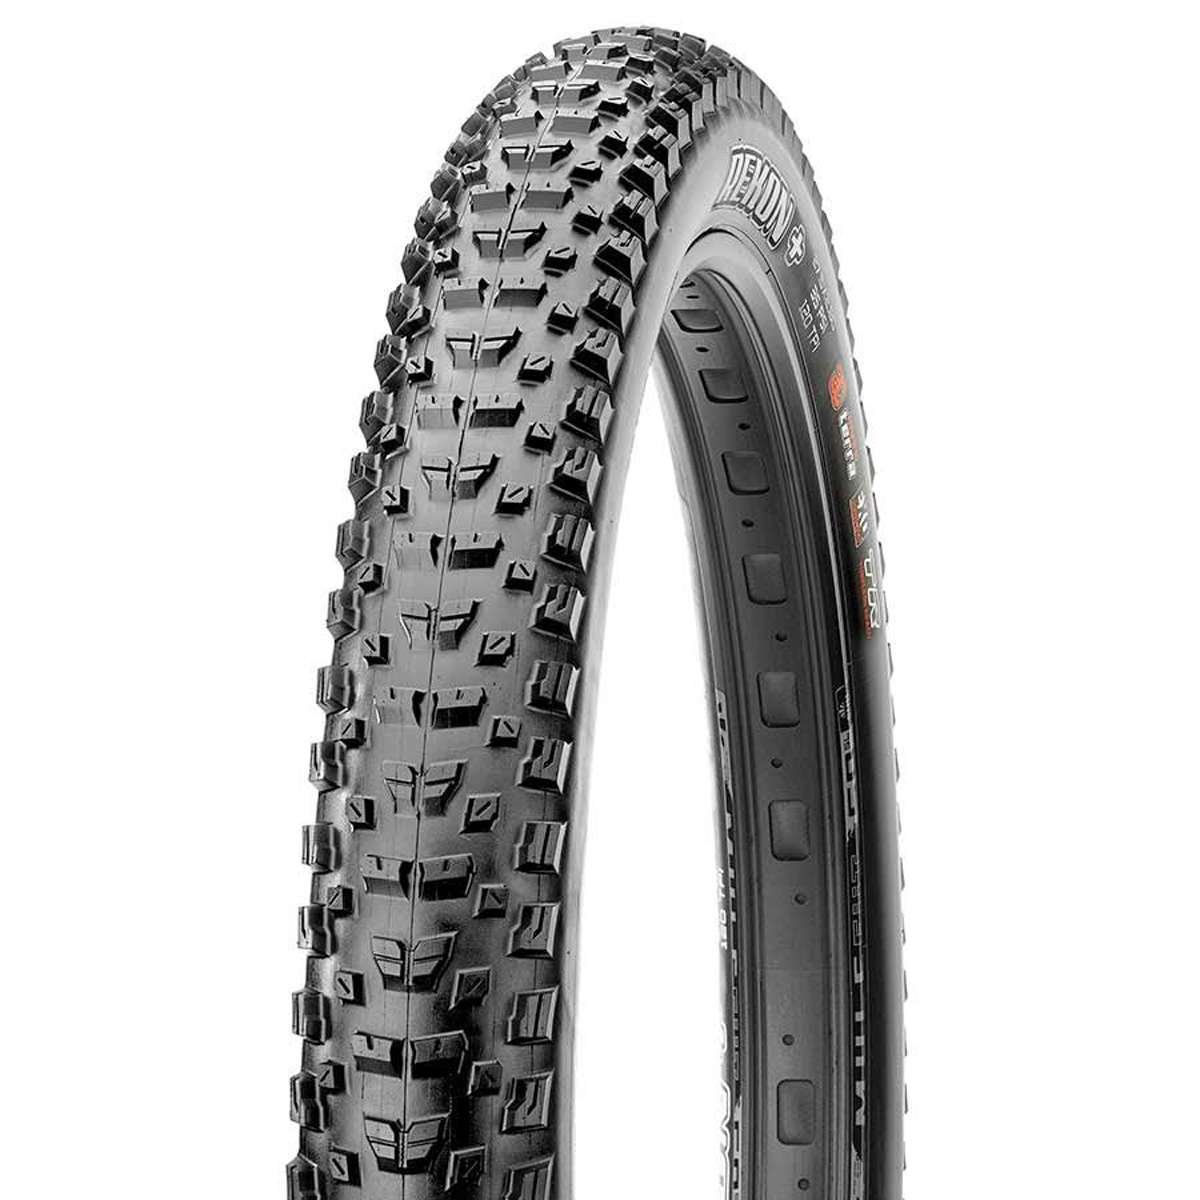 Maxxis Rekonタイヤ29 x 2.6 60tpi Dual Compound EXO Casing Tubeless Ready B0756NBH29